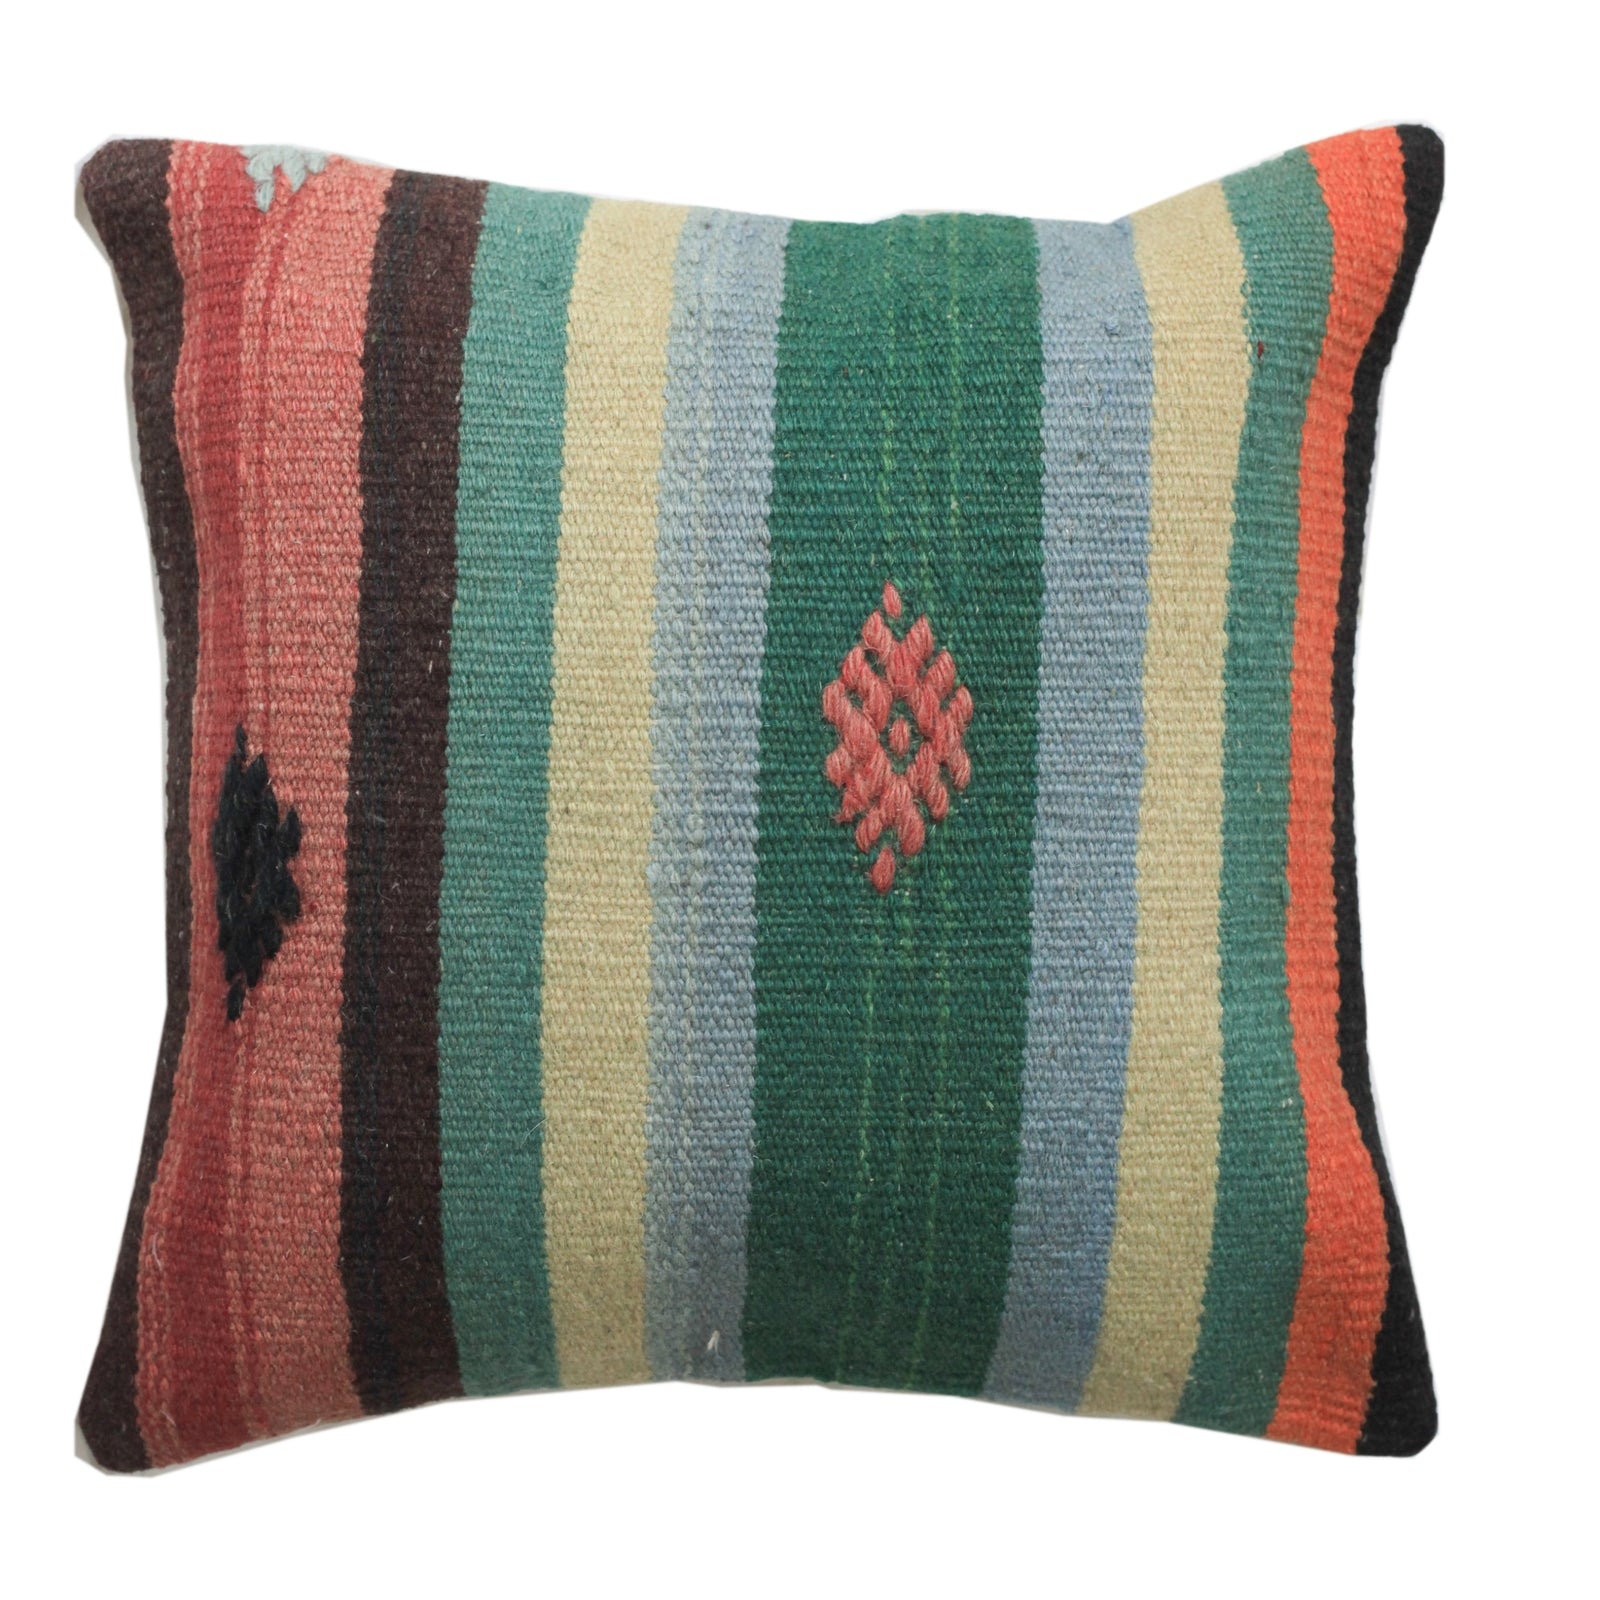 El Cosmico Pillow